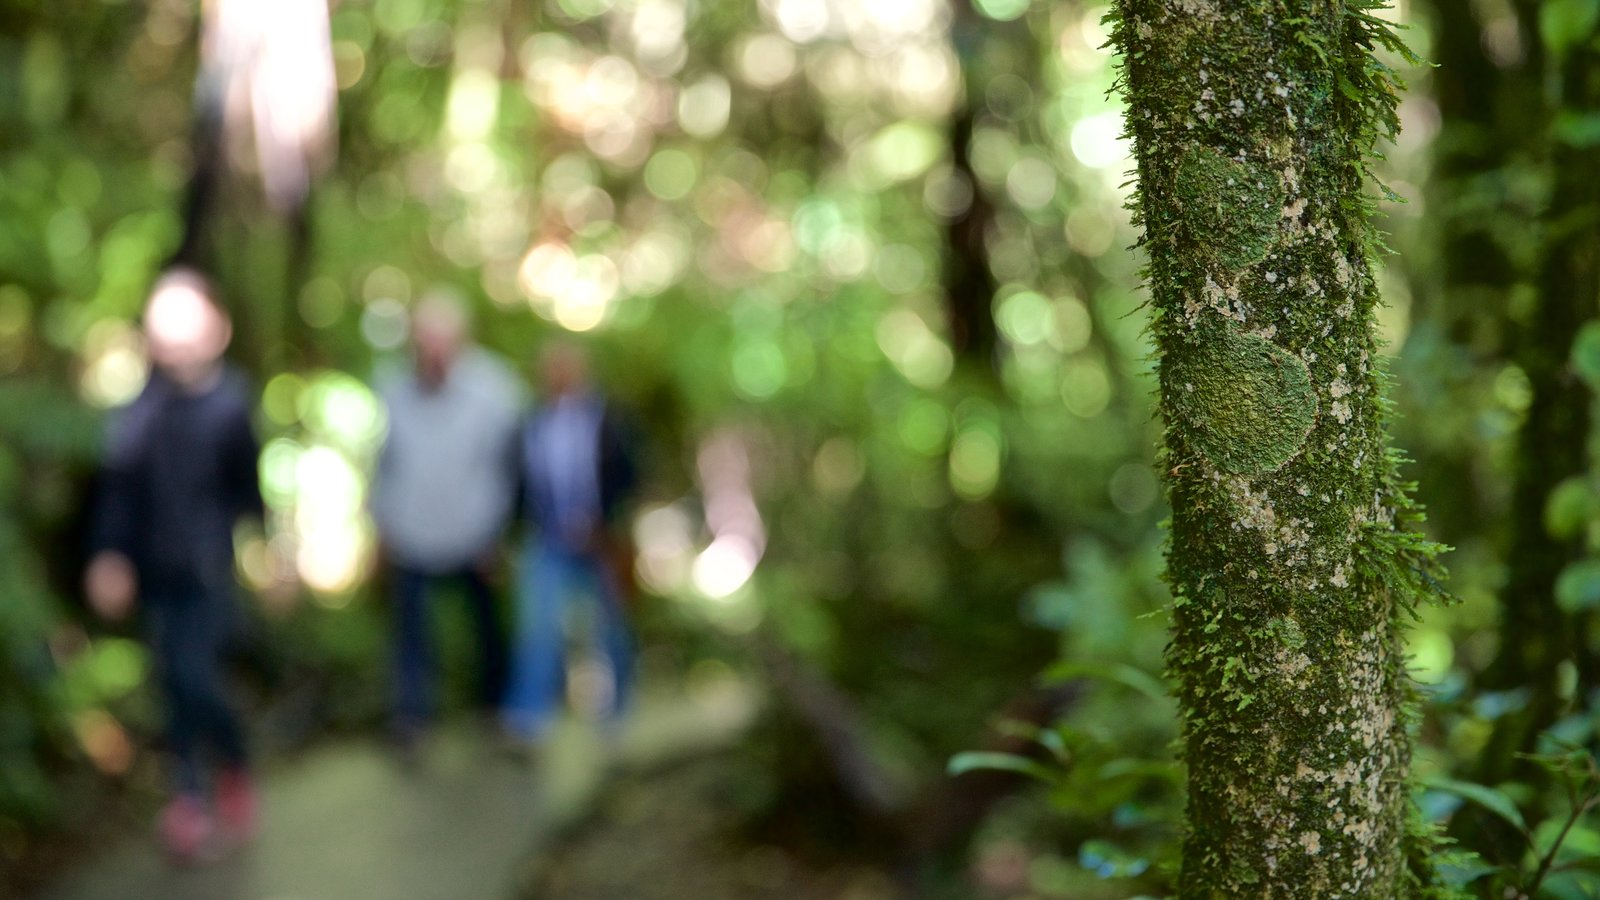 Waitomo Glowworm Caves featuring forests